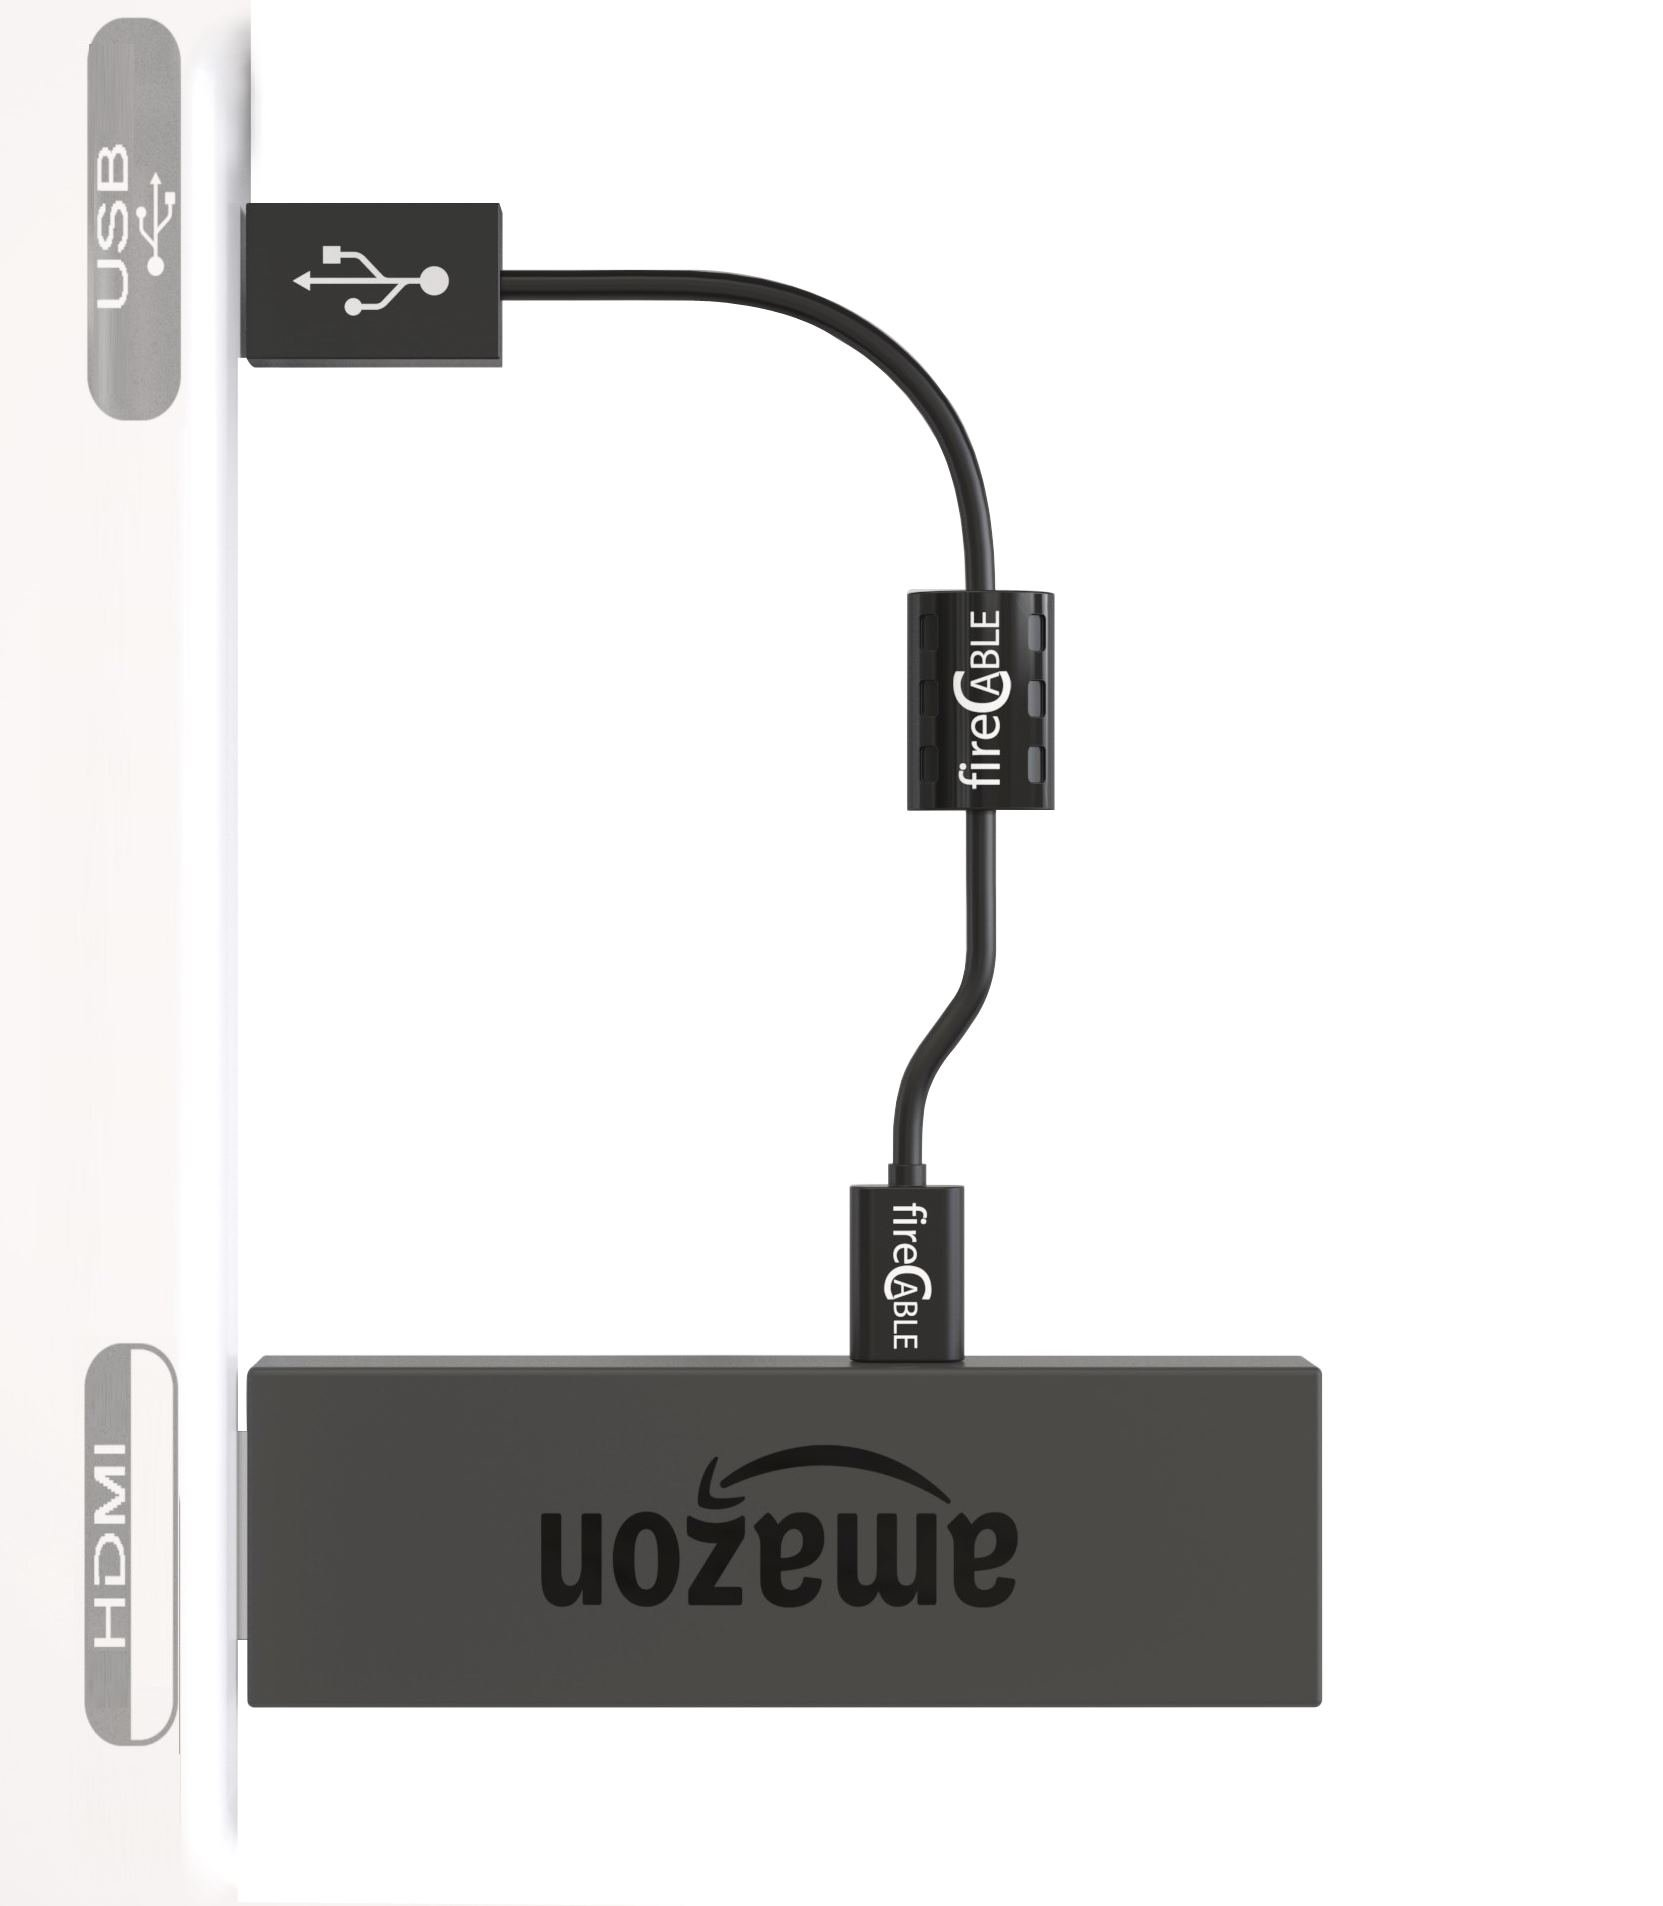 NEW fireCable PowerPlus USB Cable | Powers Any HDMI Streaming Device for TV from TV's USB for All Streaming Media Players, HDMI Streaming Sticks, Firestick, etc.. Perfect TV Wall Mount Accessory